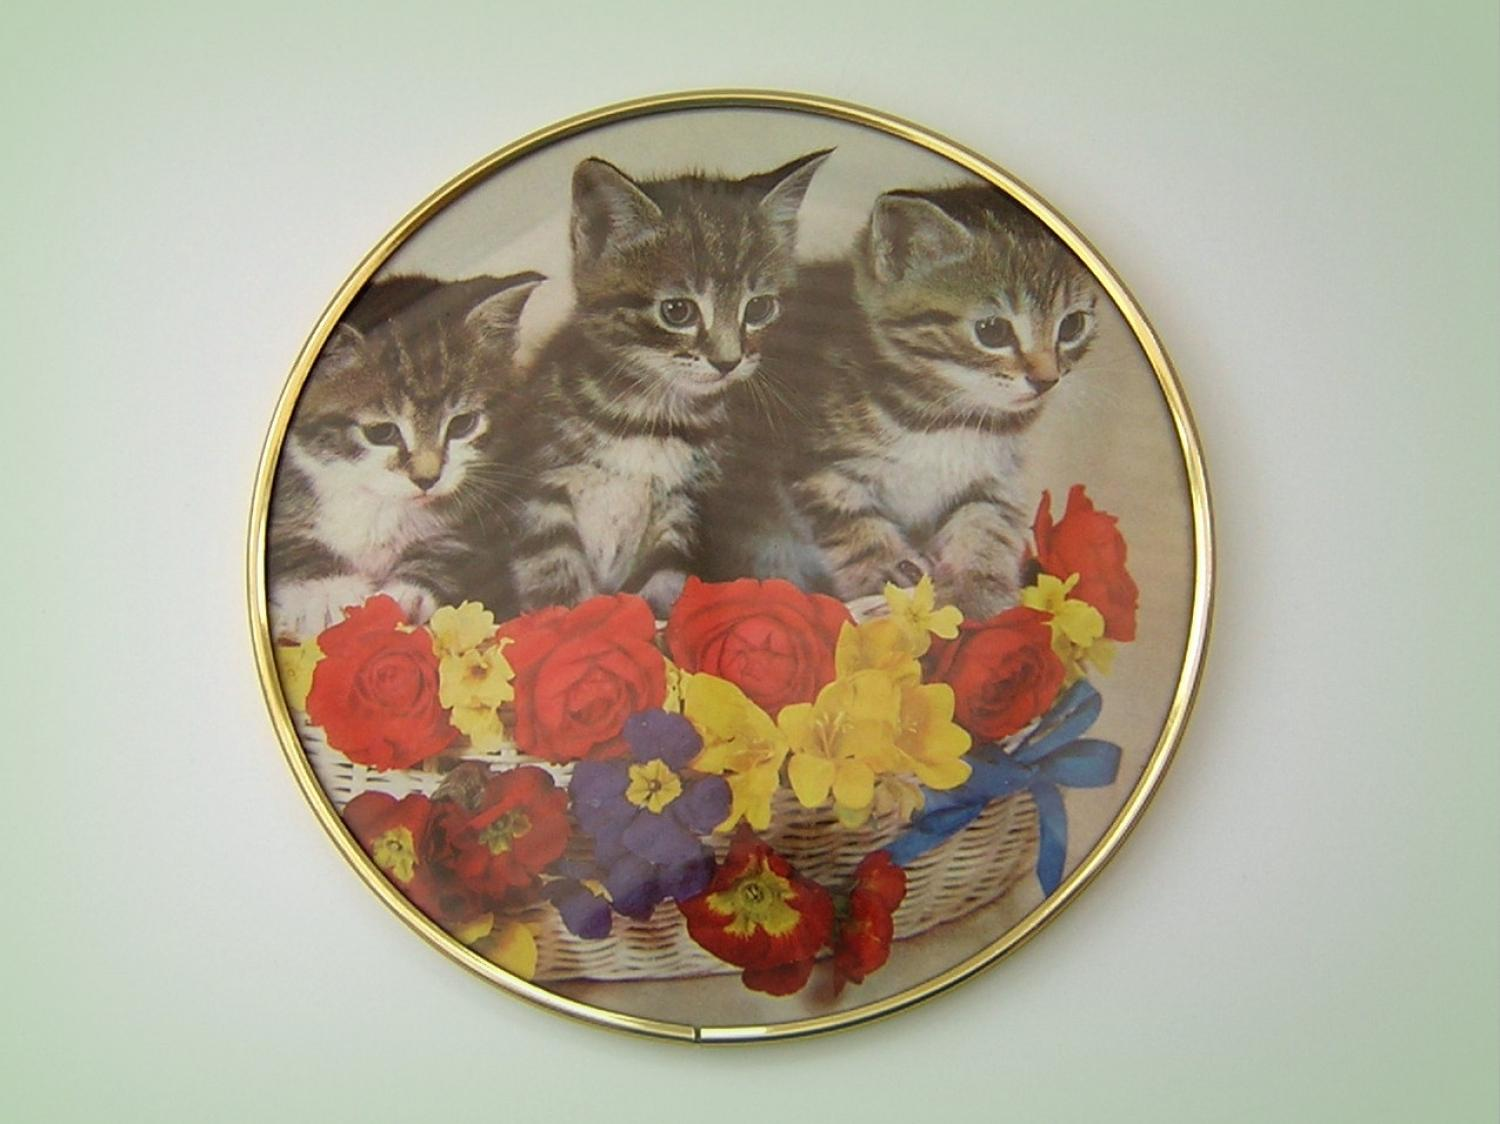 Vintage Kittens Wall Plaque